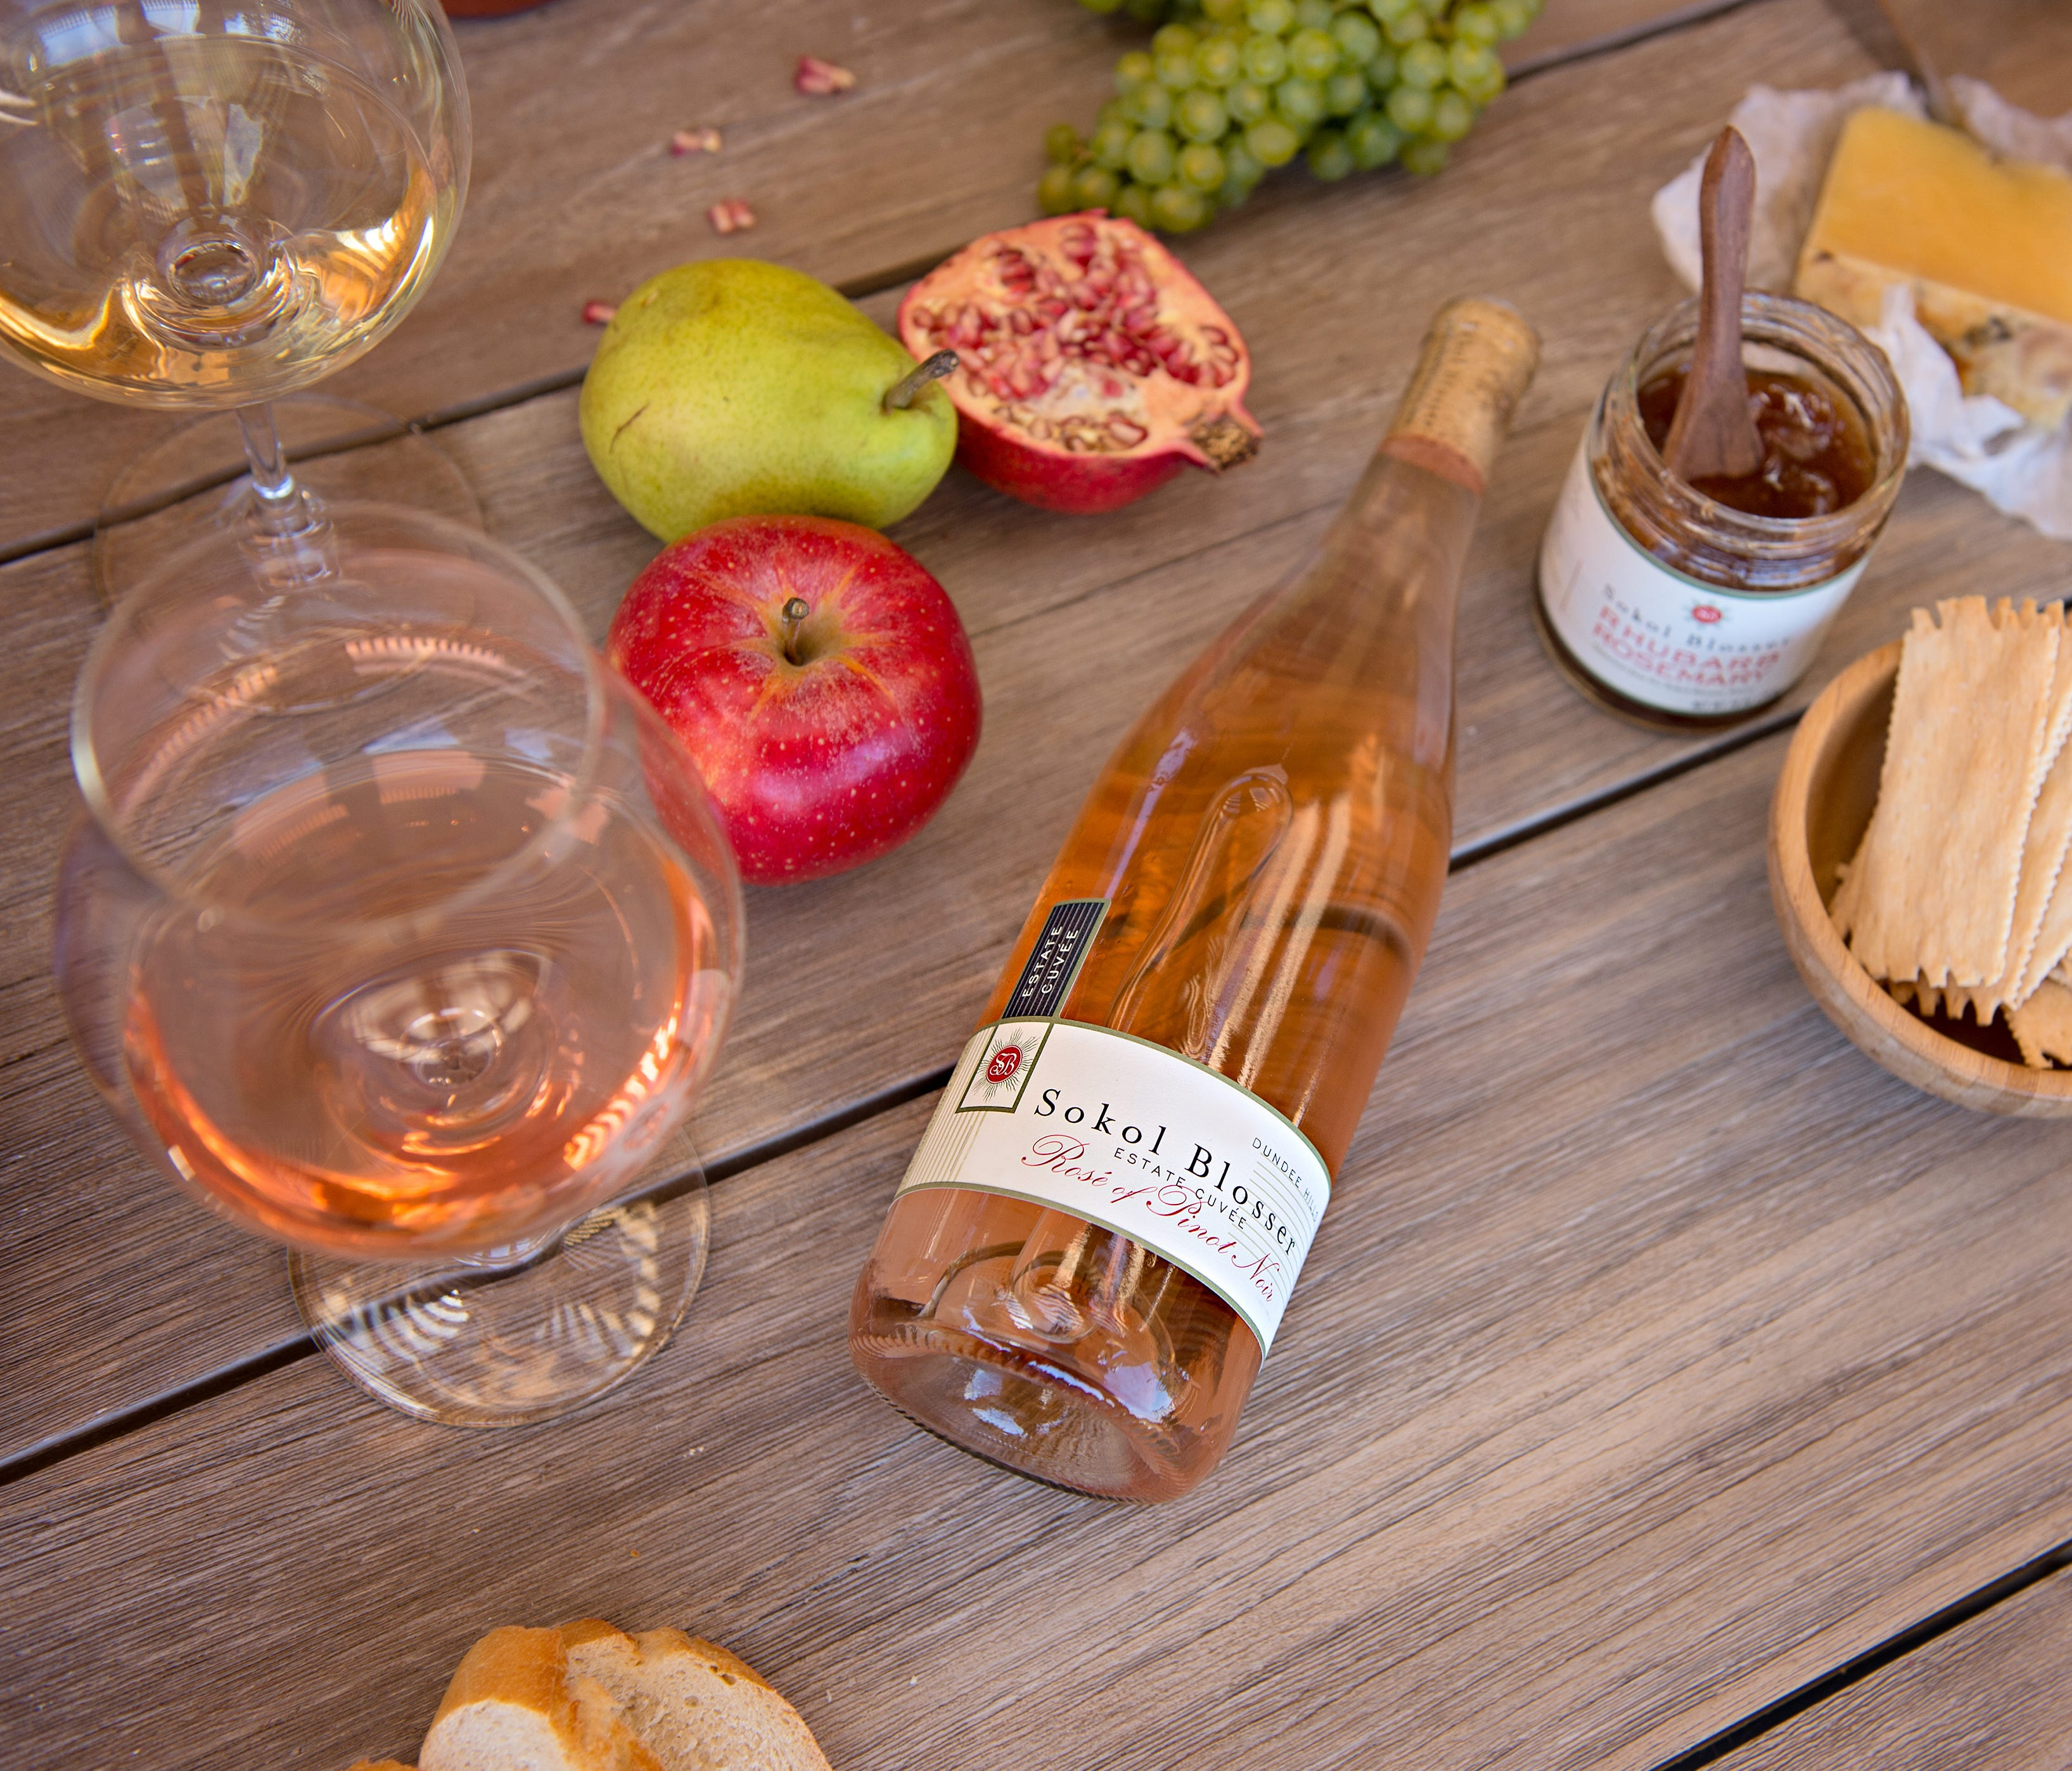 Oregon's Sokol Blosser released its 2017 Estate Rosé of Pinot Noir on Valentine's Day. The 100% Pinot Noir grapes are grown in the Willamette Valley.